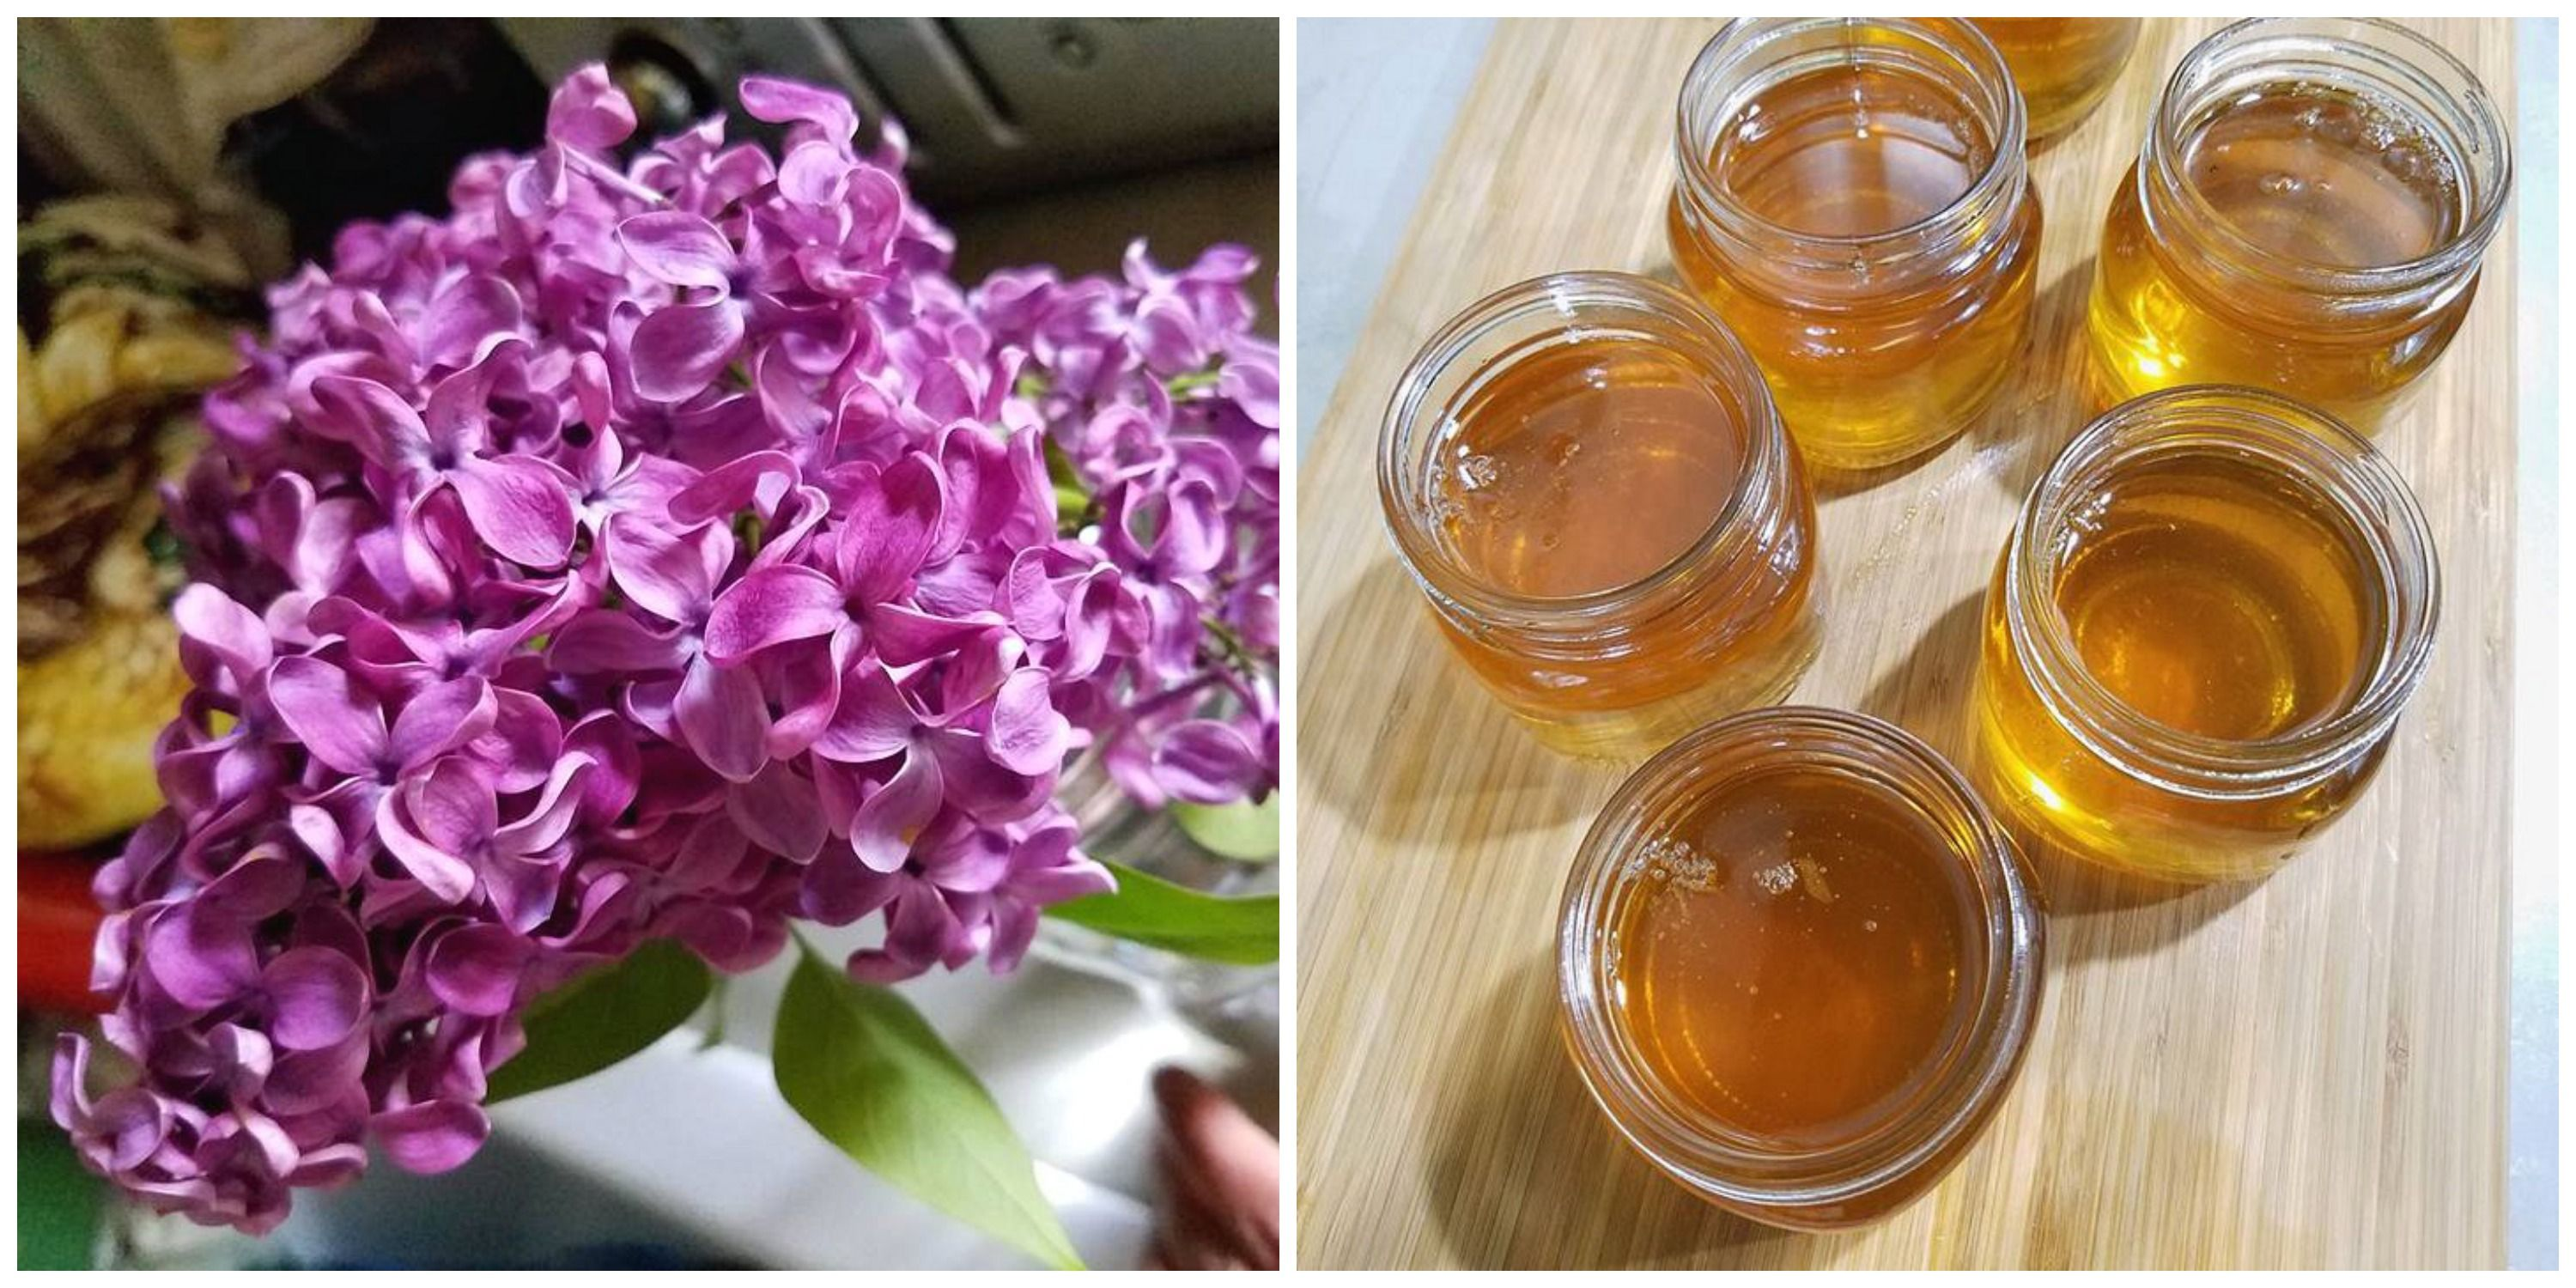 Lilac Flower Jelly A Delightful Floral Jelly A Farm Girl In The Making Recipe Purple Food Coloring Edible Flowers Lilac Flowers